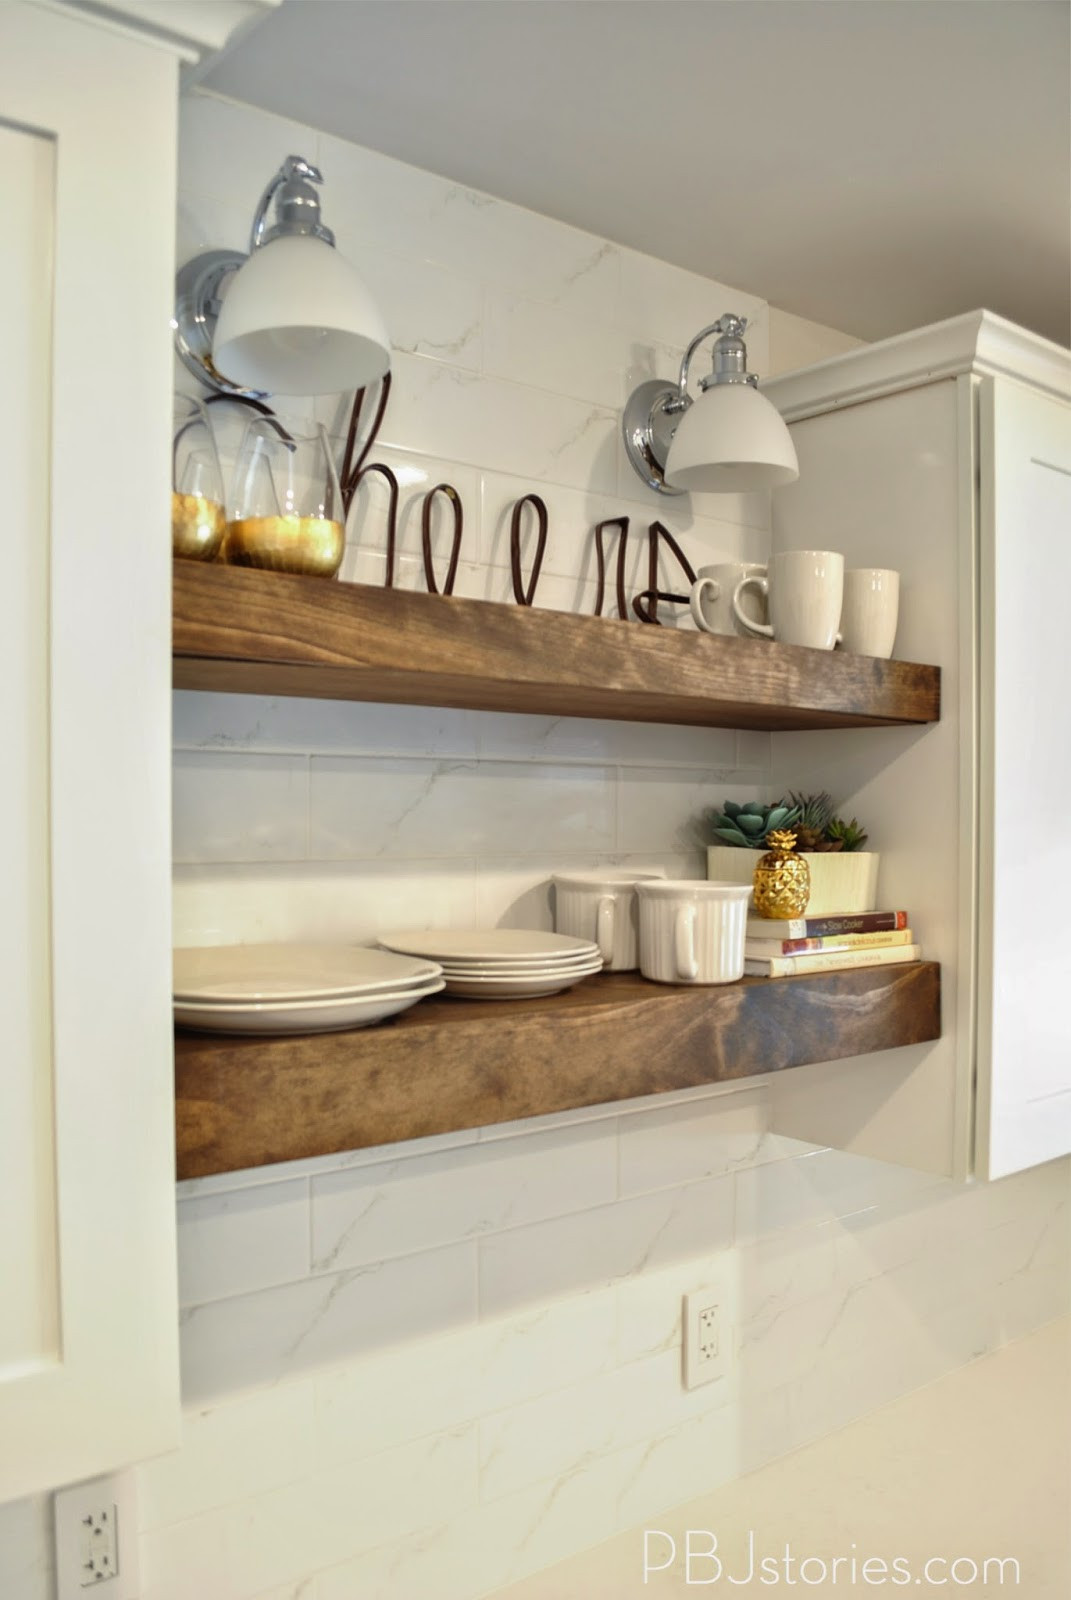 Best ideas about Kitchen Shelves DIY . Save or Pin PBJstories Our DIY Open Kitchen Shelves Now.